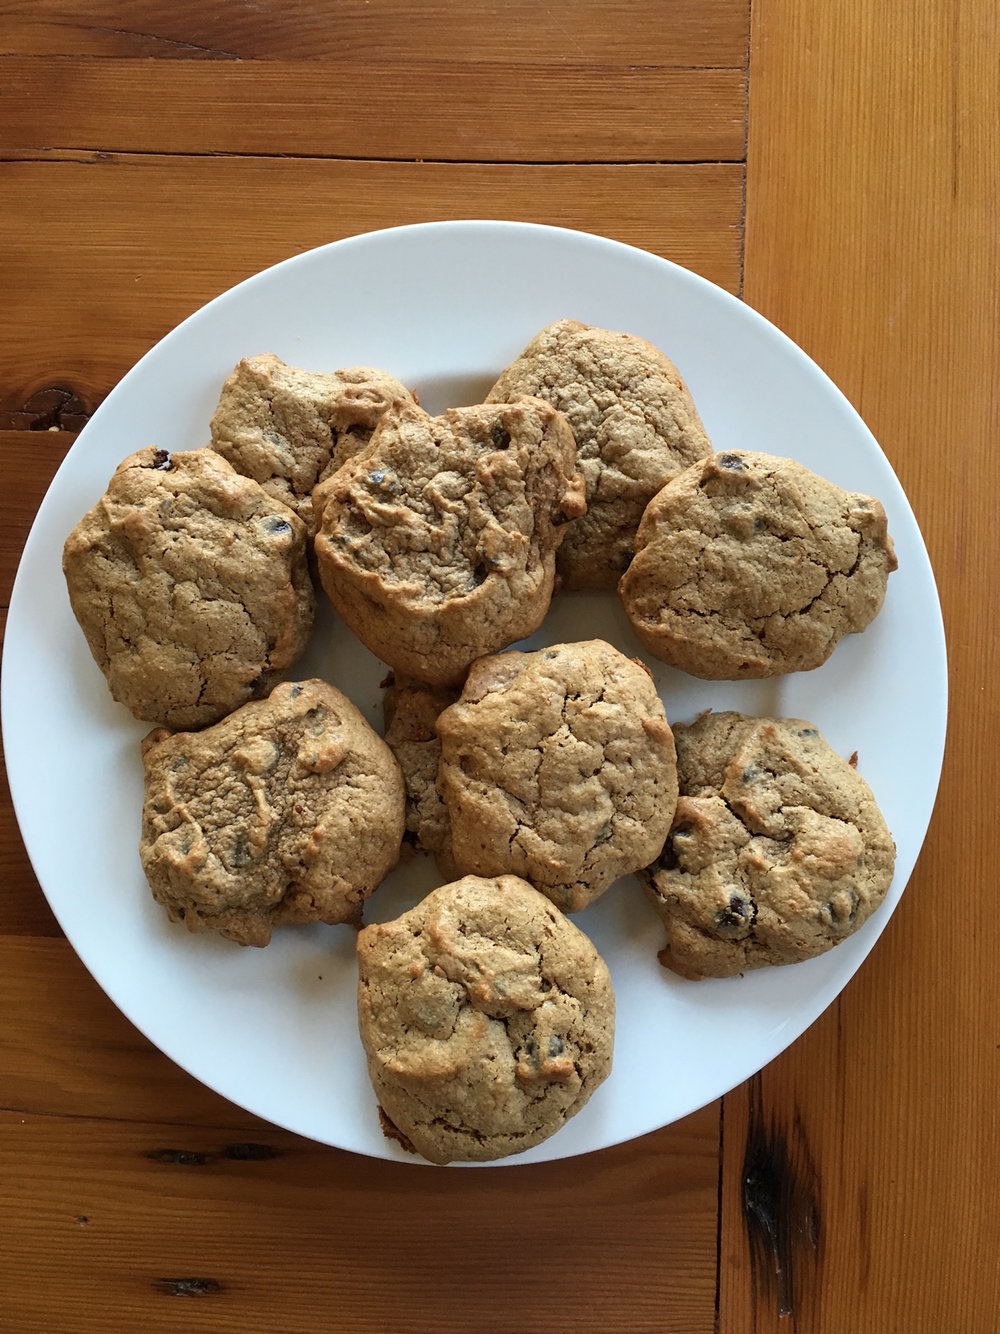 Paleo, chocolate chip, paleo baking, gluten free, clean eating, homemade